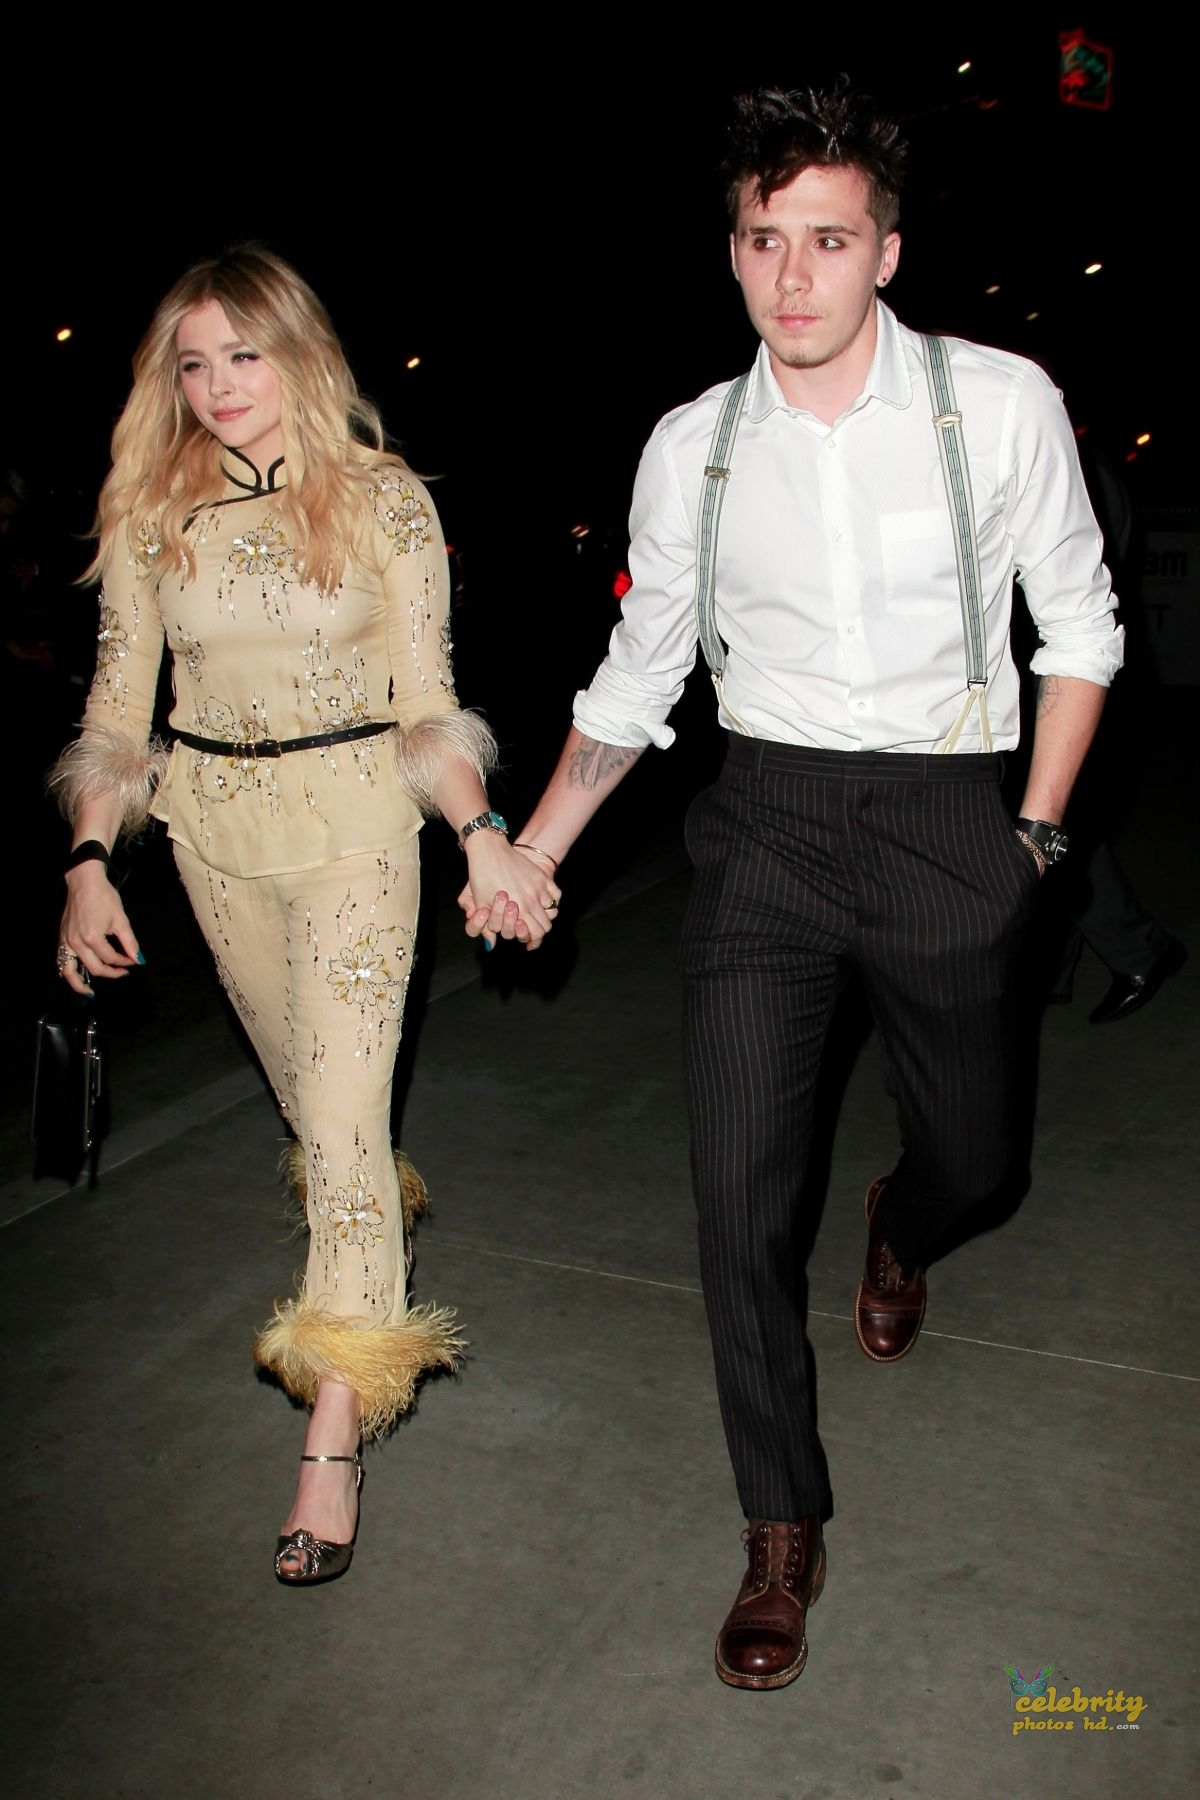 CHLOE MORETZ Celebrates Her 21st Birthday with Brooklyn Beckham in Los Angeles (5)